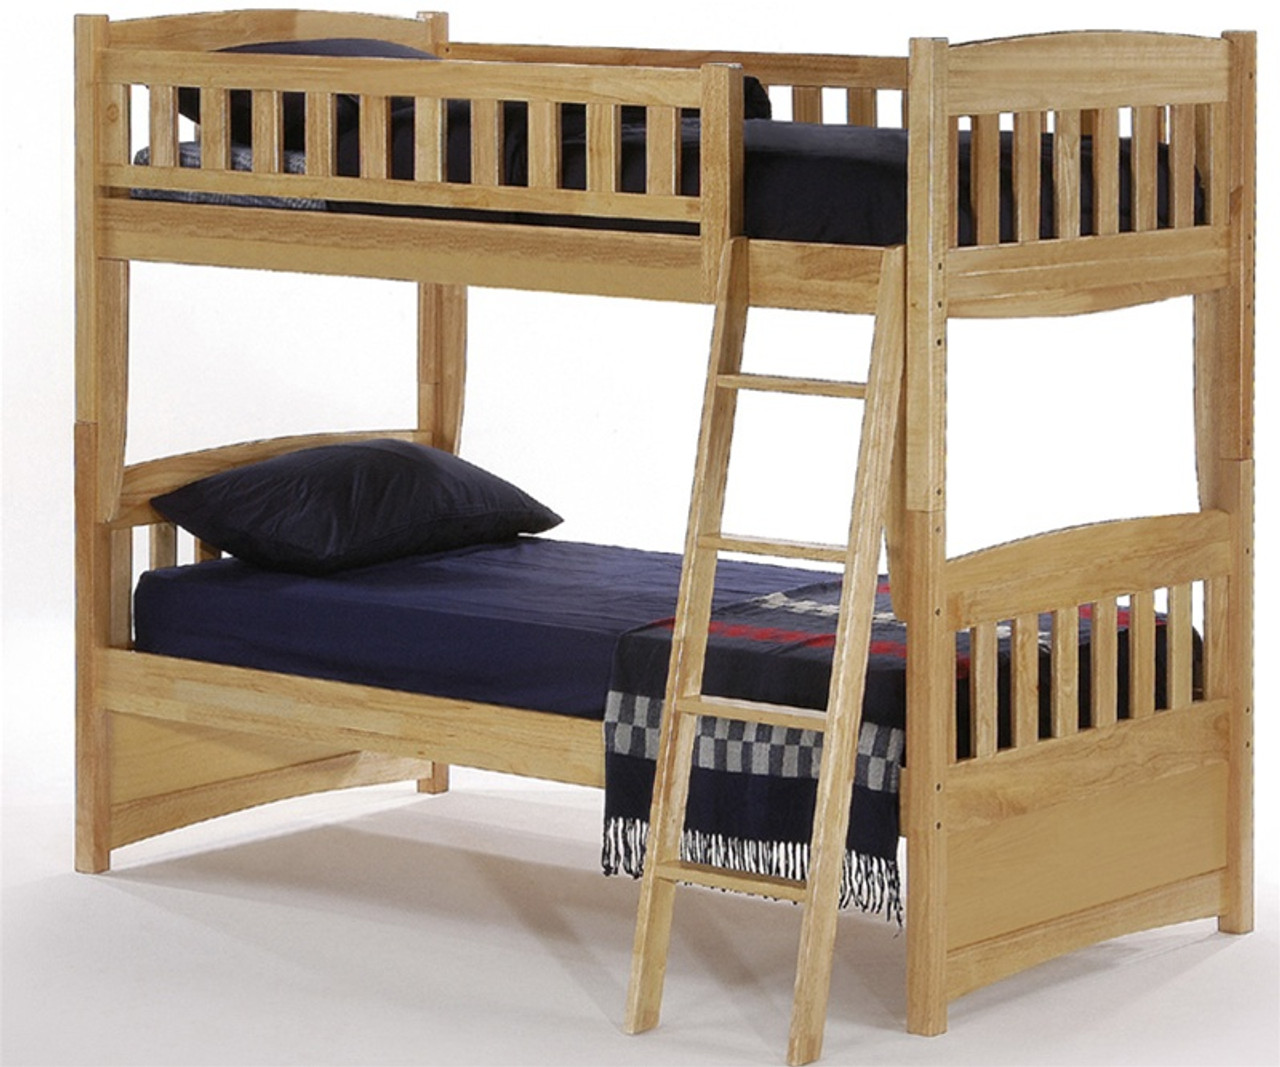 Night And Day Cinnamon Twin Bunk Bed Natural Spice Collection Furniture Twin Bunkbeds And Cinnamon Bunk Beds In Natural Maple Finishes Solid Wood Cinnamon Model Bunkbed